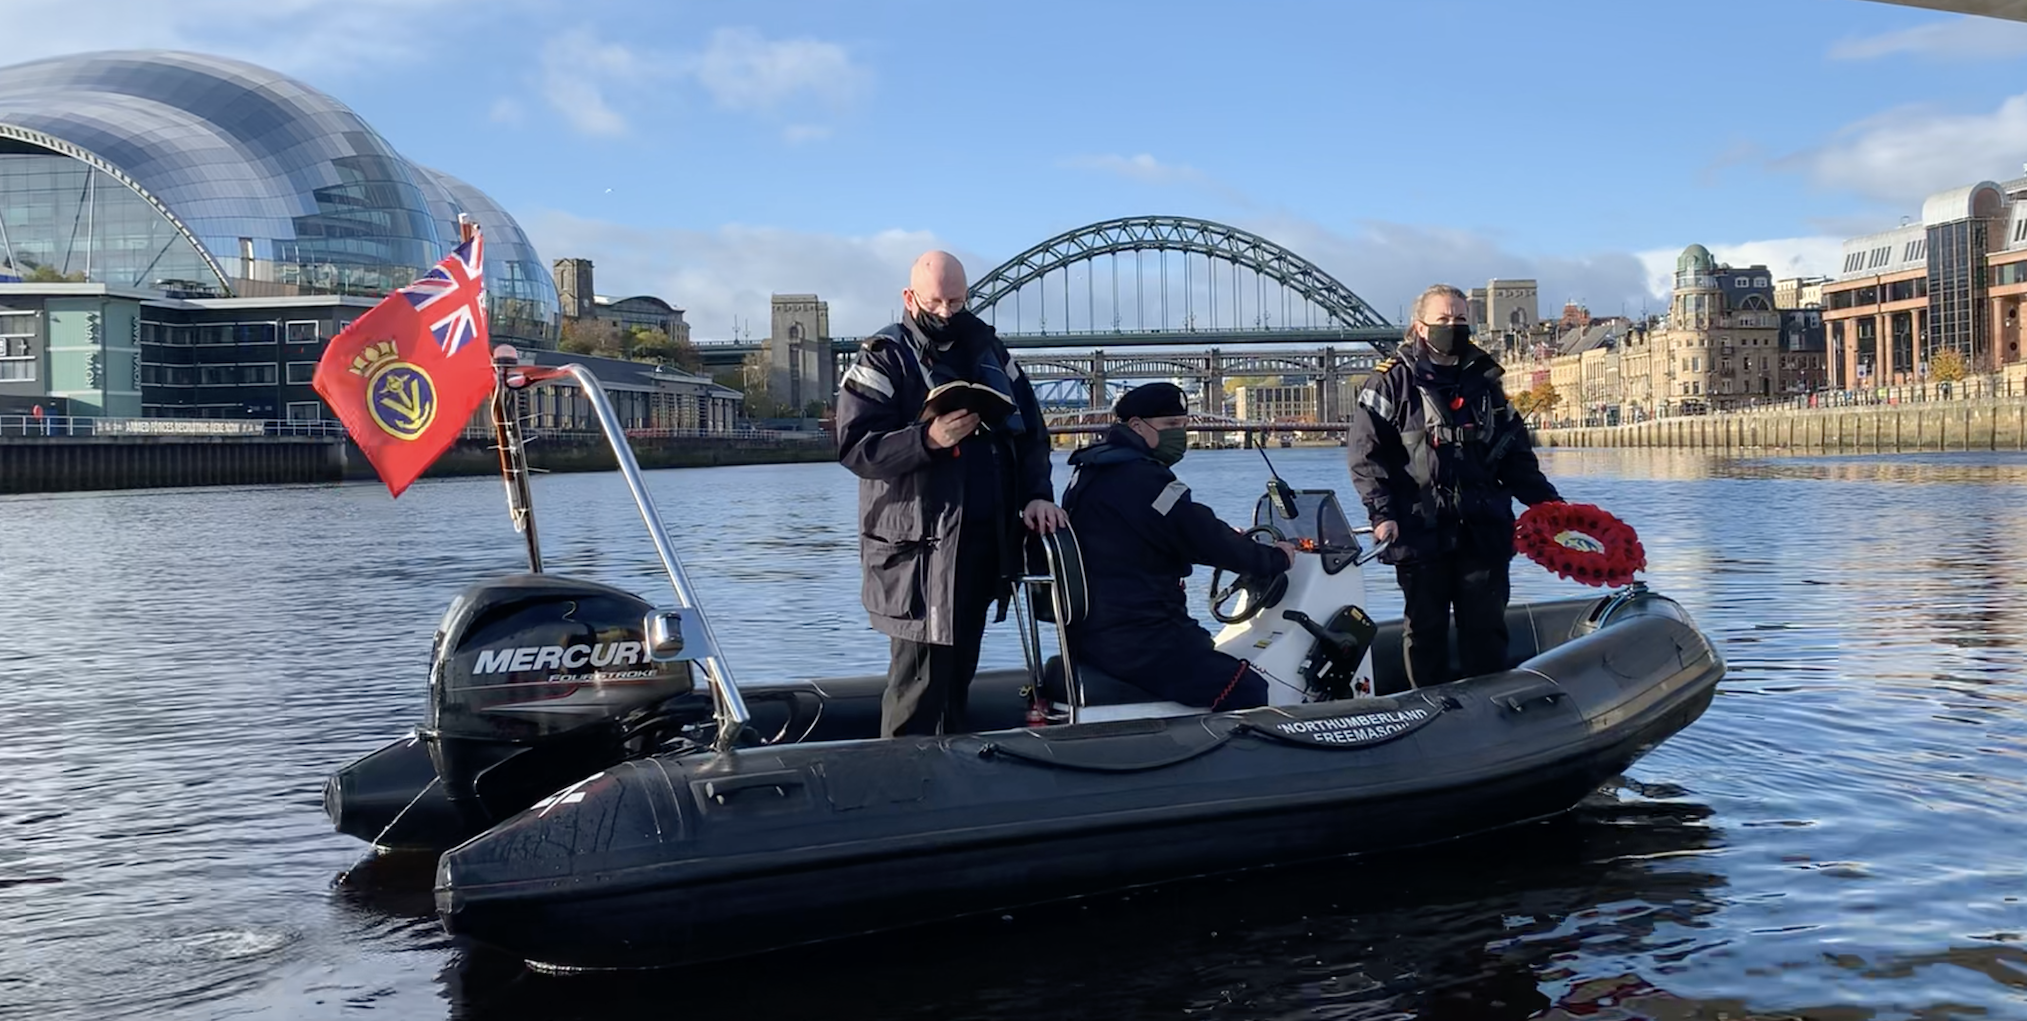 Maritime Volunteer Service Organises Remembrance Sunday Parade Sail